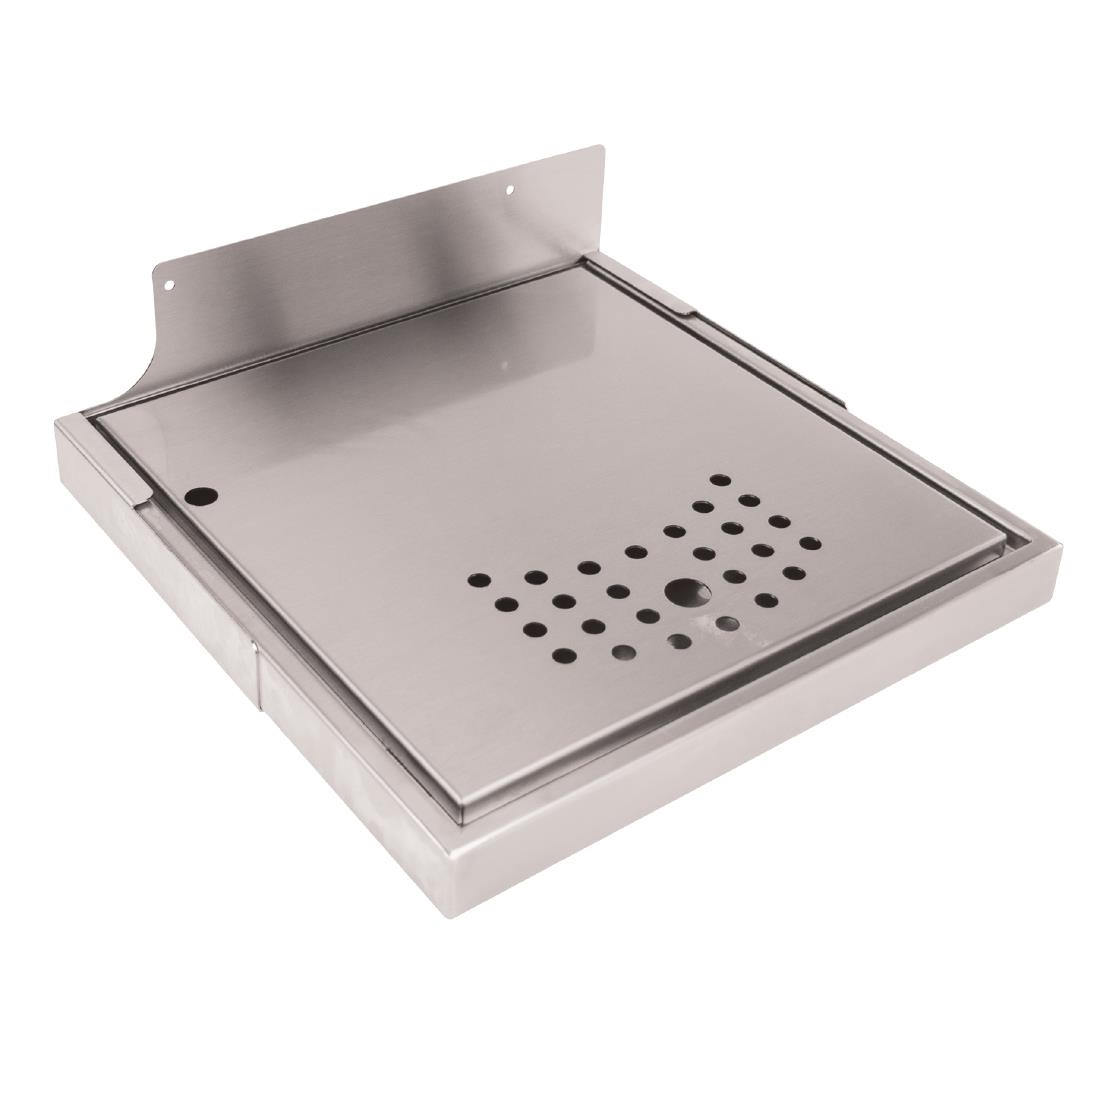 Image of Drip tray for M10F water boiler